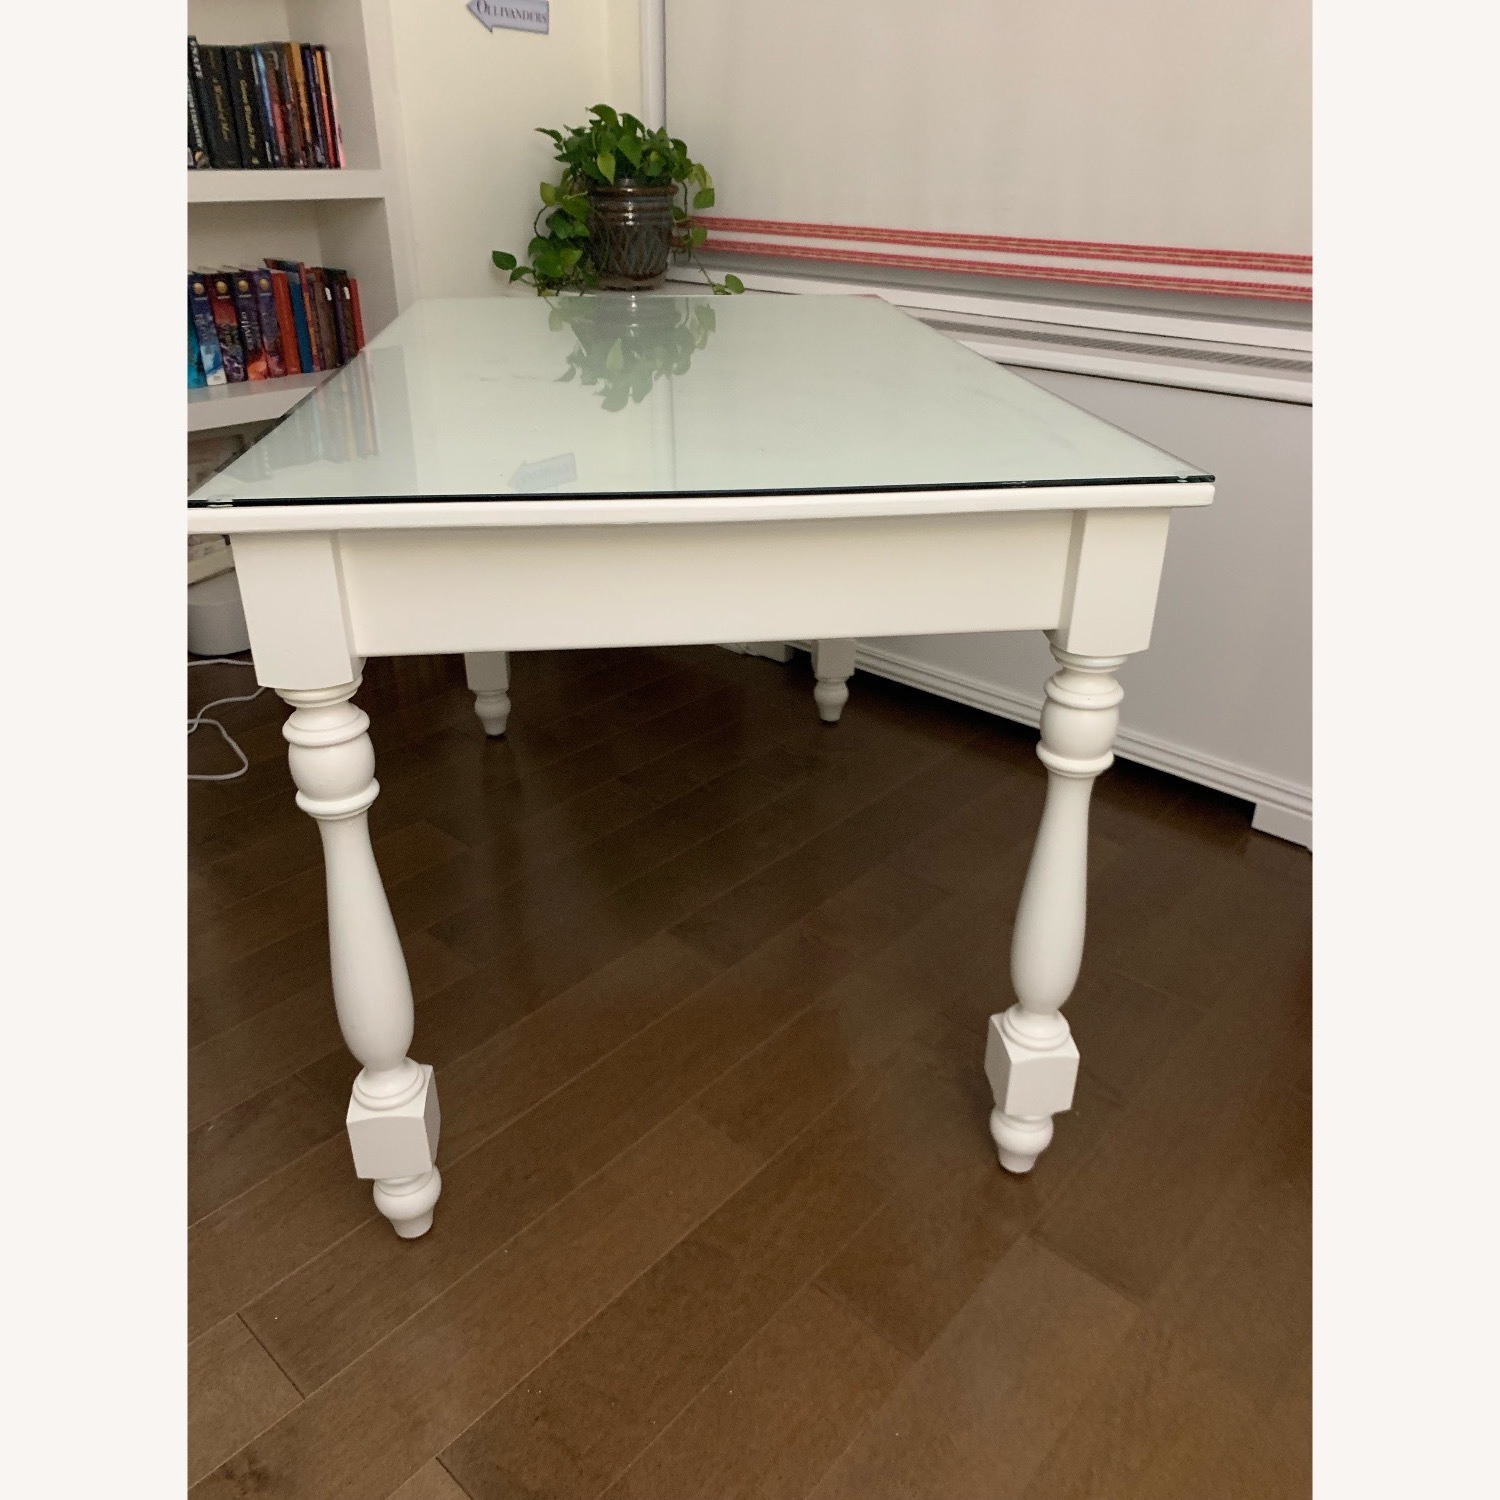 Ivory Colored Wood Desk/Side Table w/Glass Top - image-12